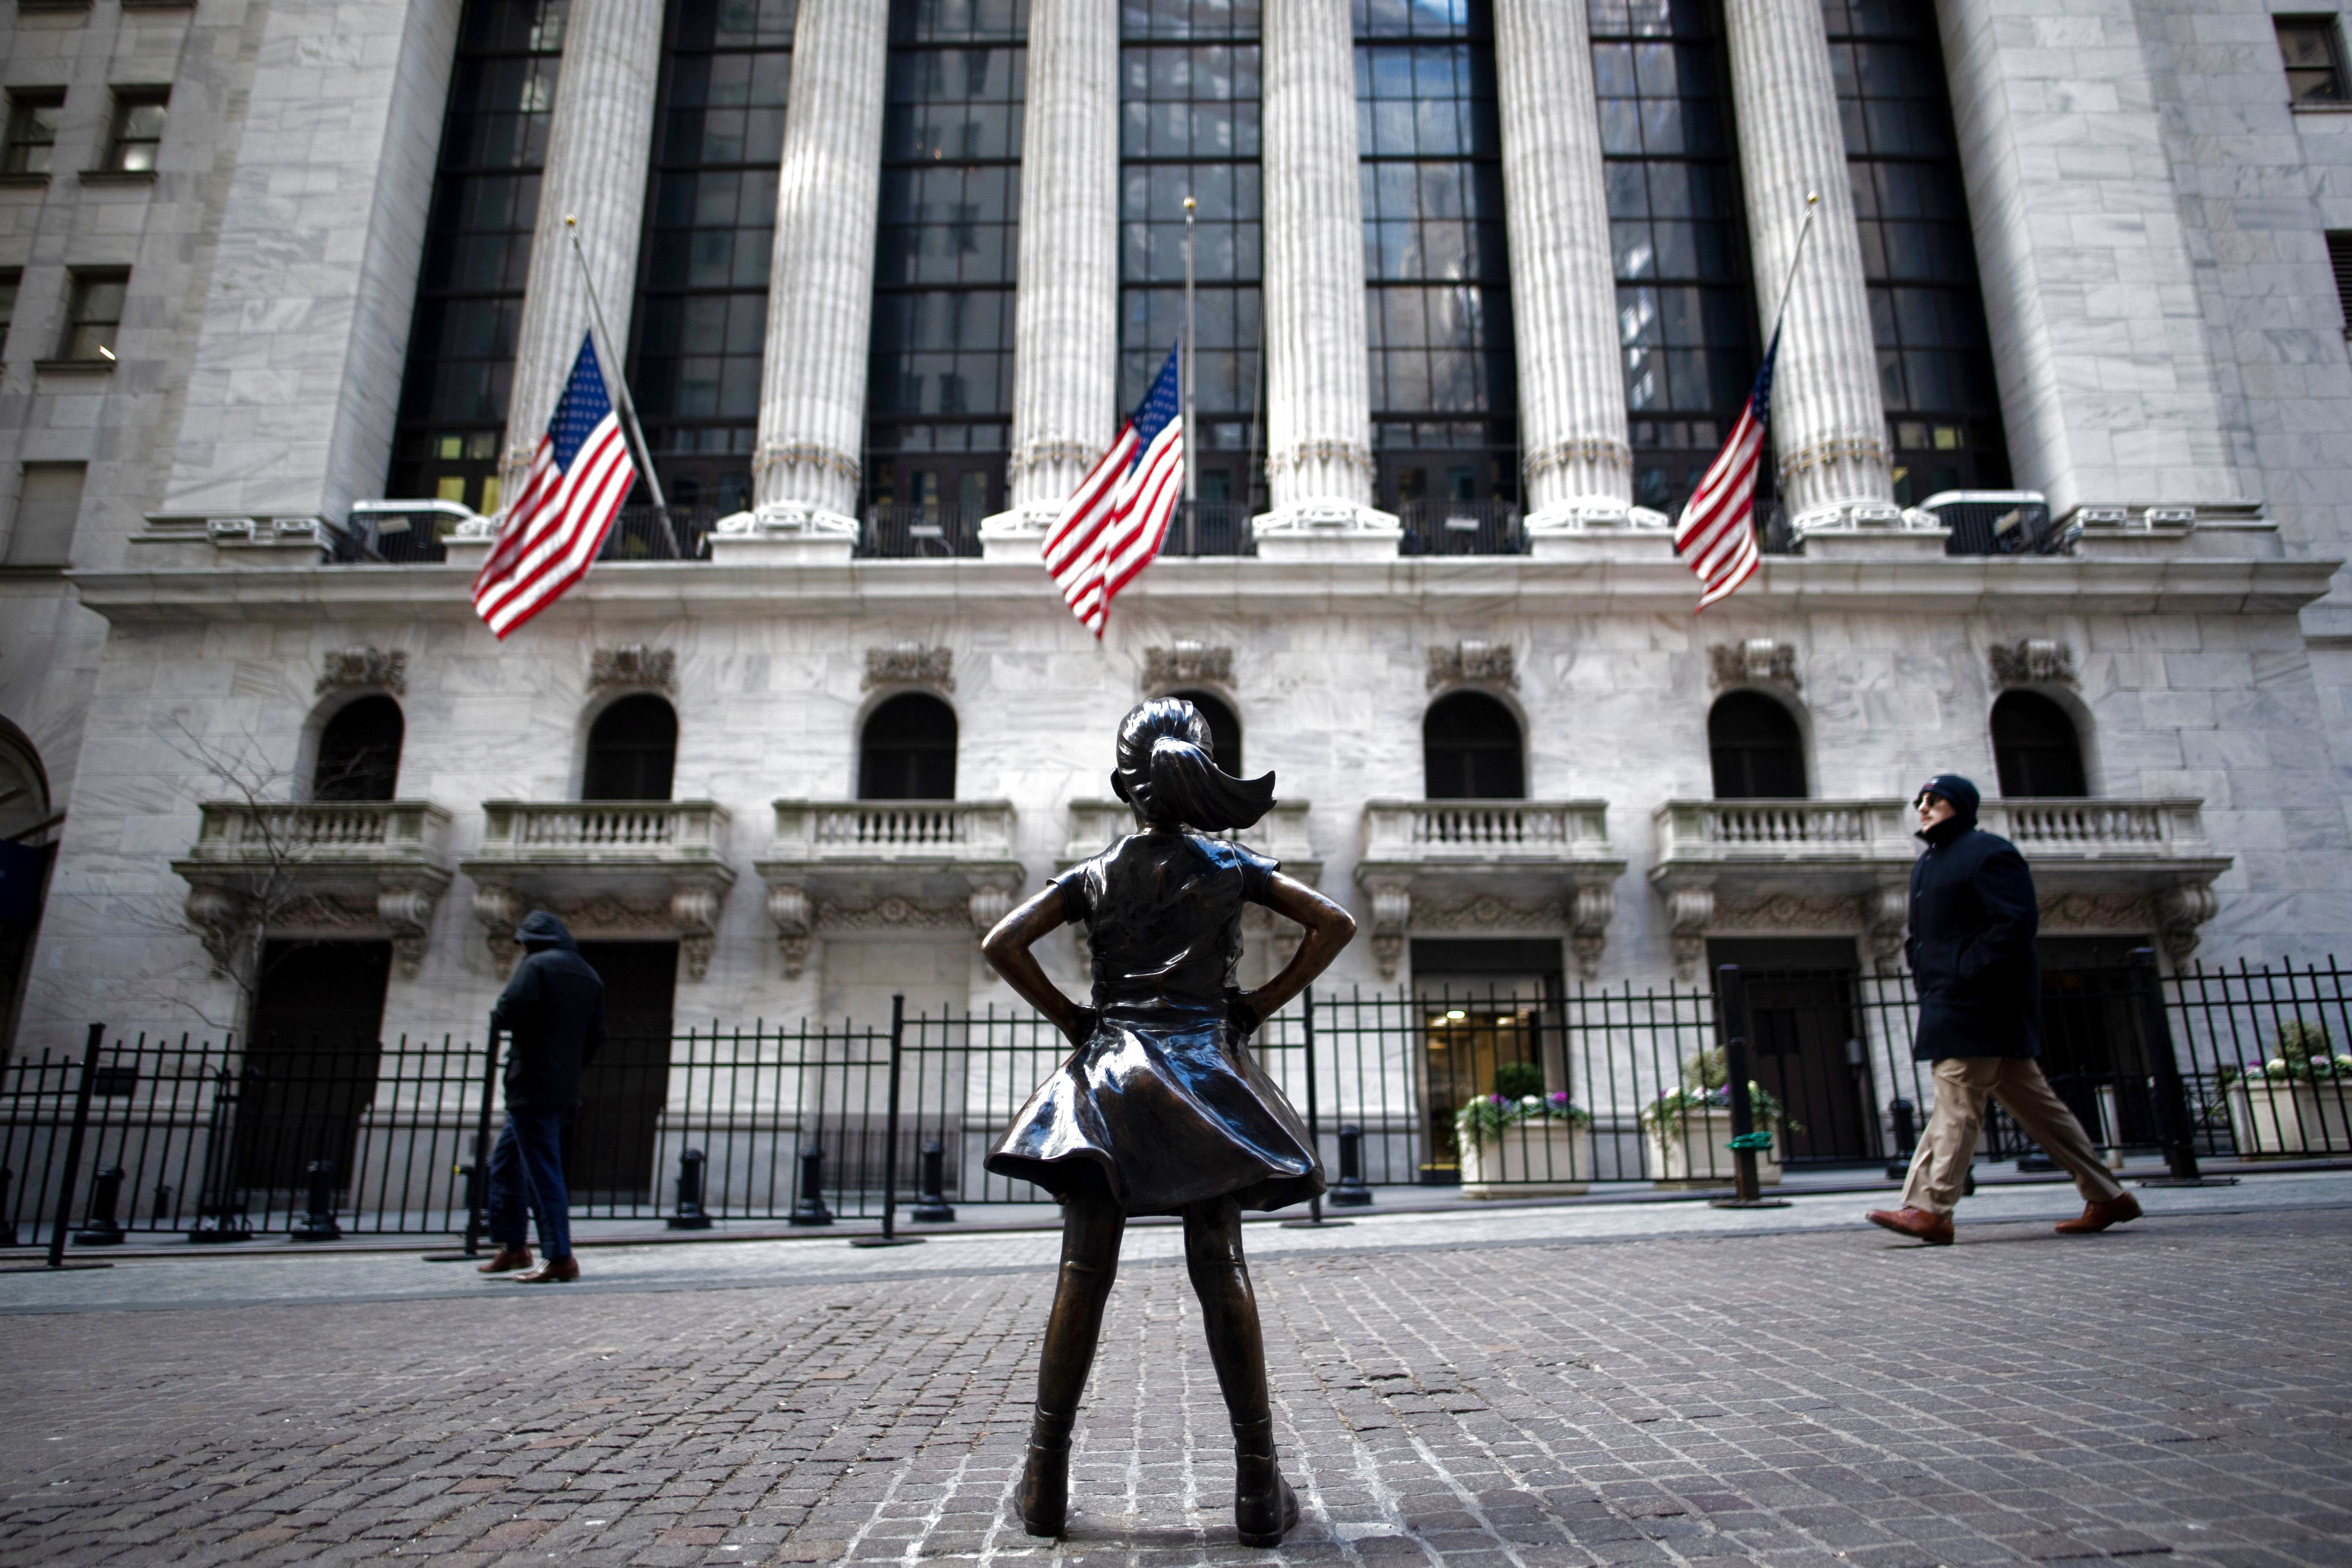 There is now a woman board member at every S&P 500 company